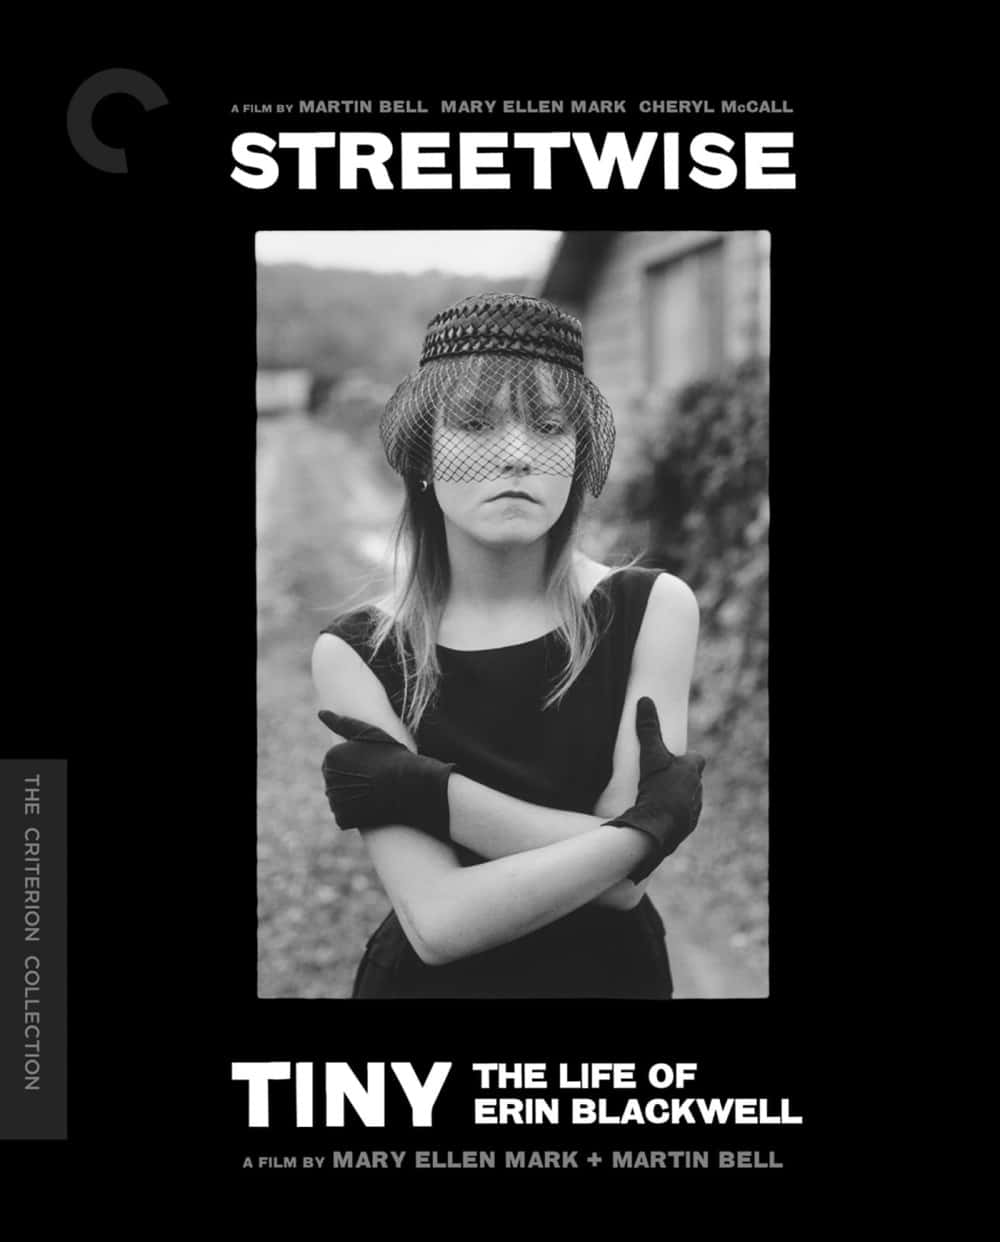 Streetwise/Tiny: The Life of Erin Blackwell The Criterion Collection Blu-ray Cover